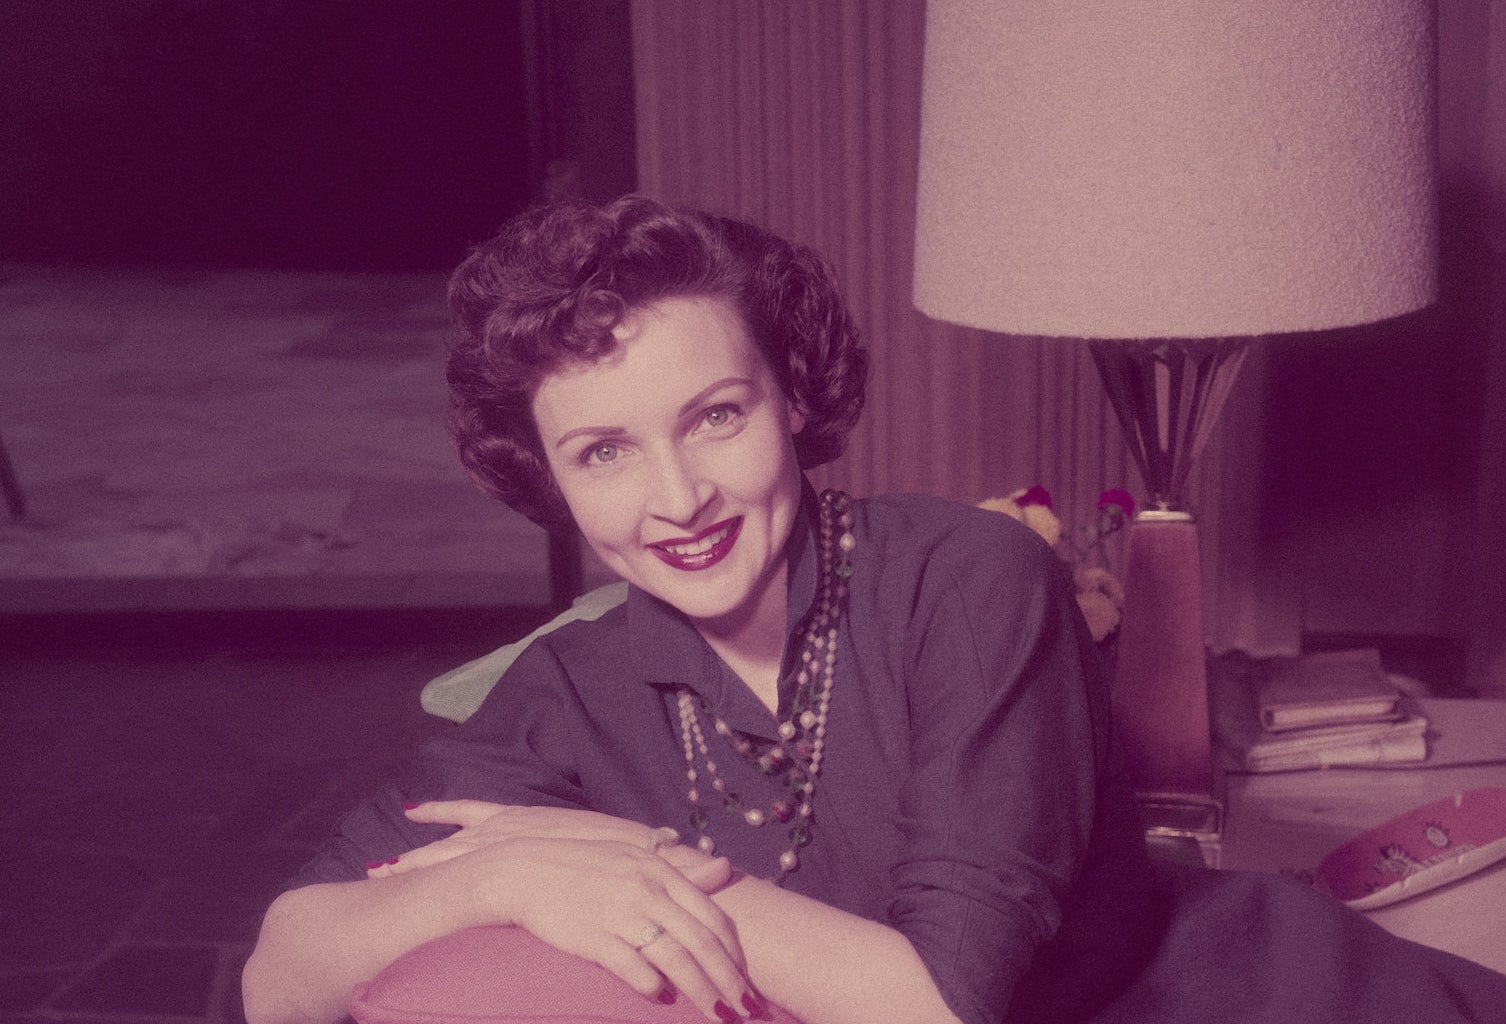 Betty in a navy blue dress leaning on a couch